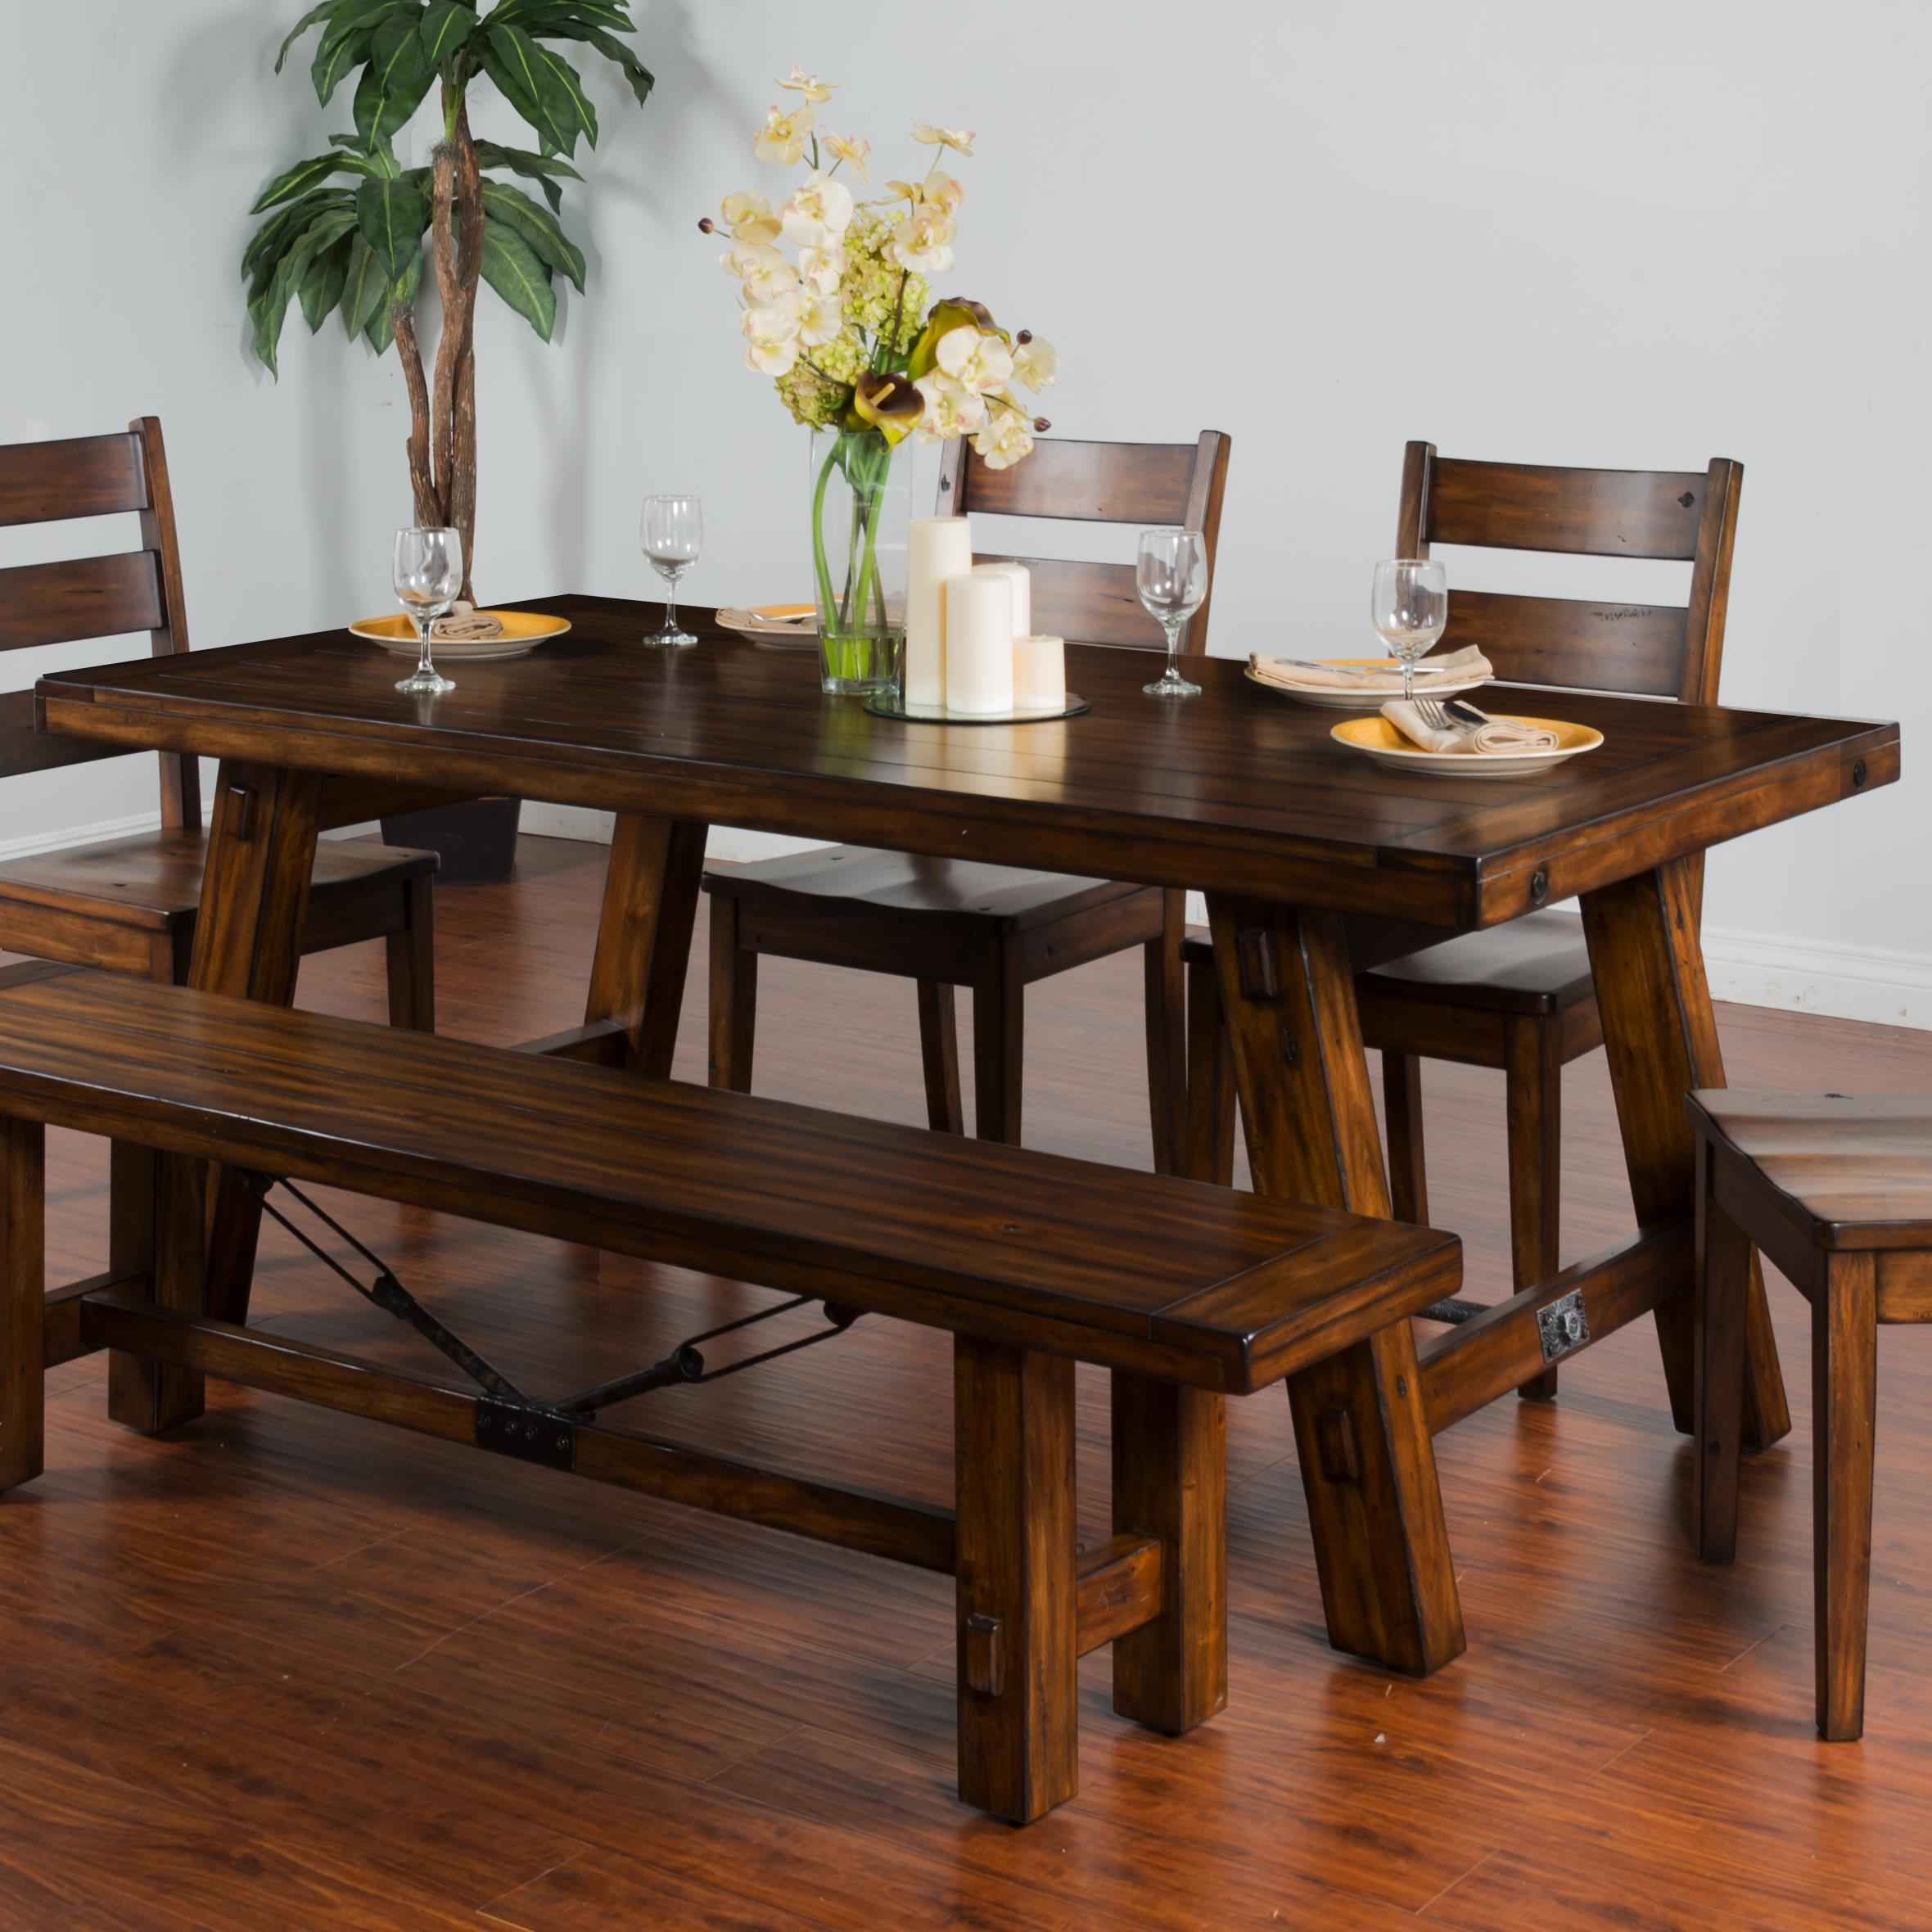 Beau By Sunny Designs. Distressed Mahogany Extension Table W/ Turnbuckle Accent